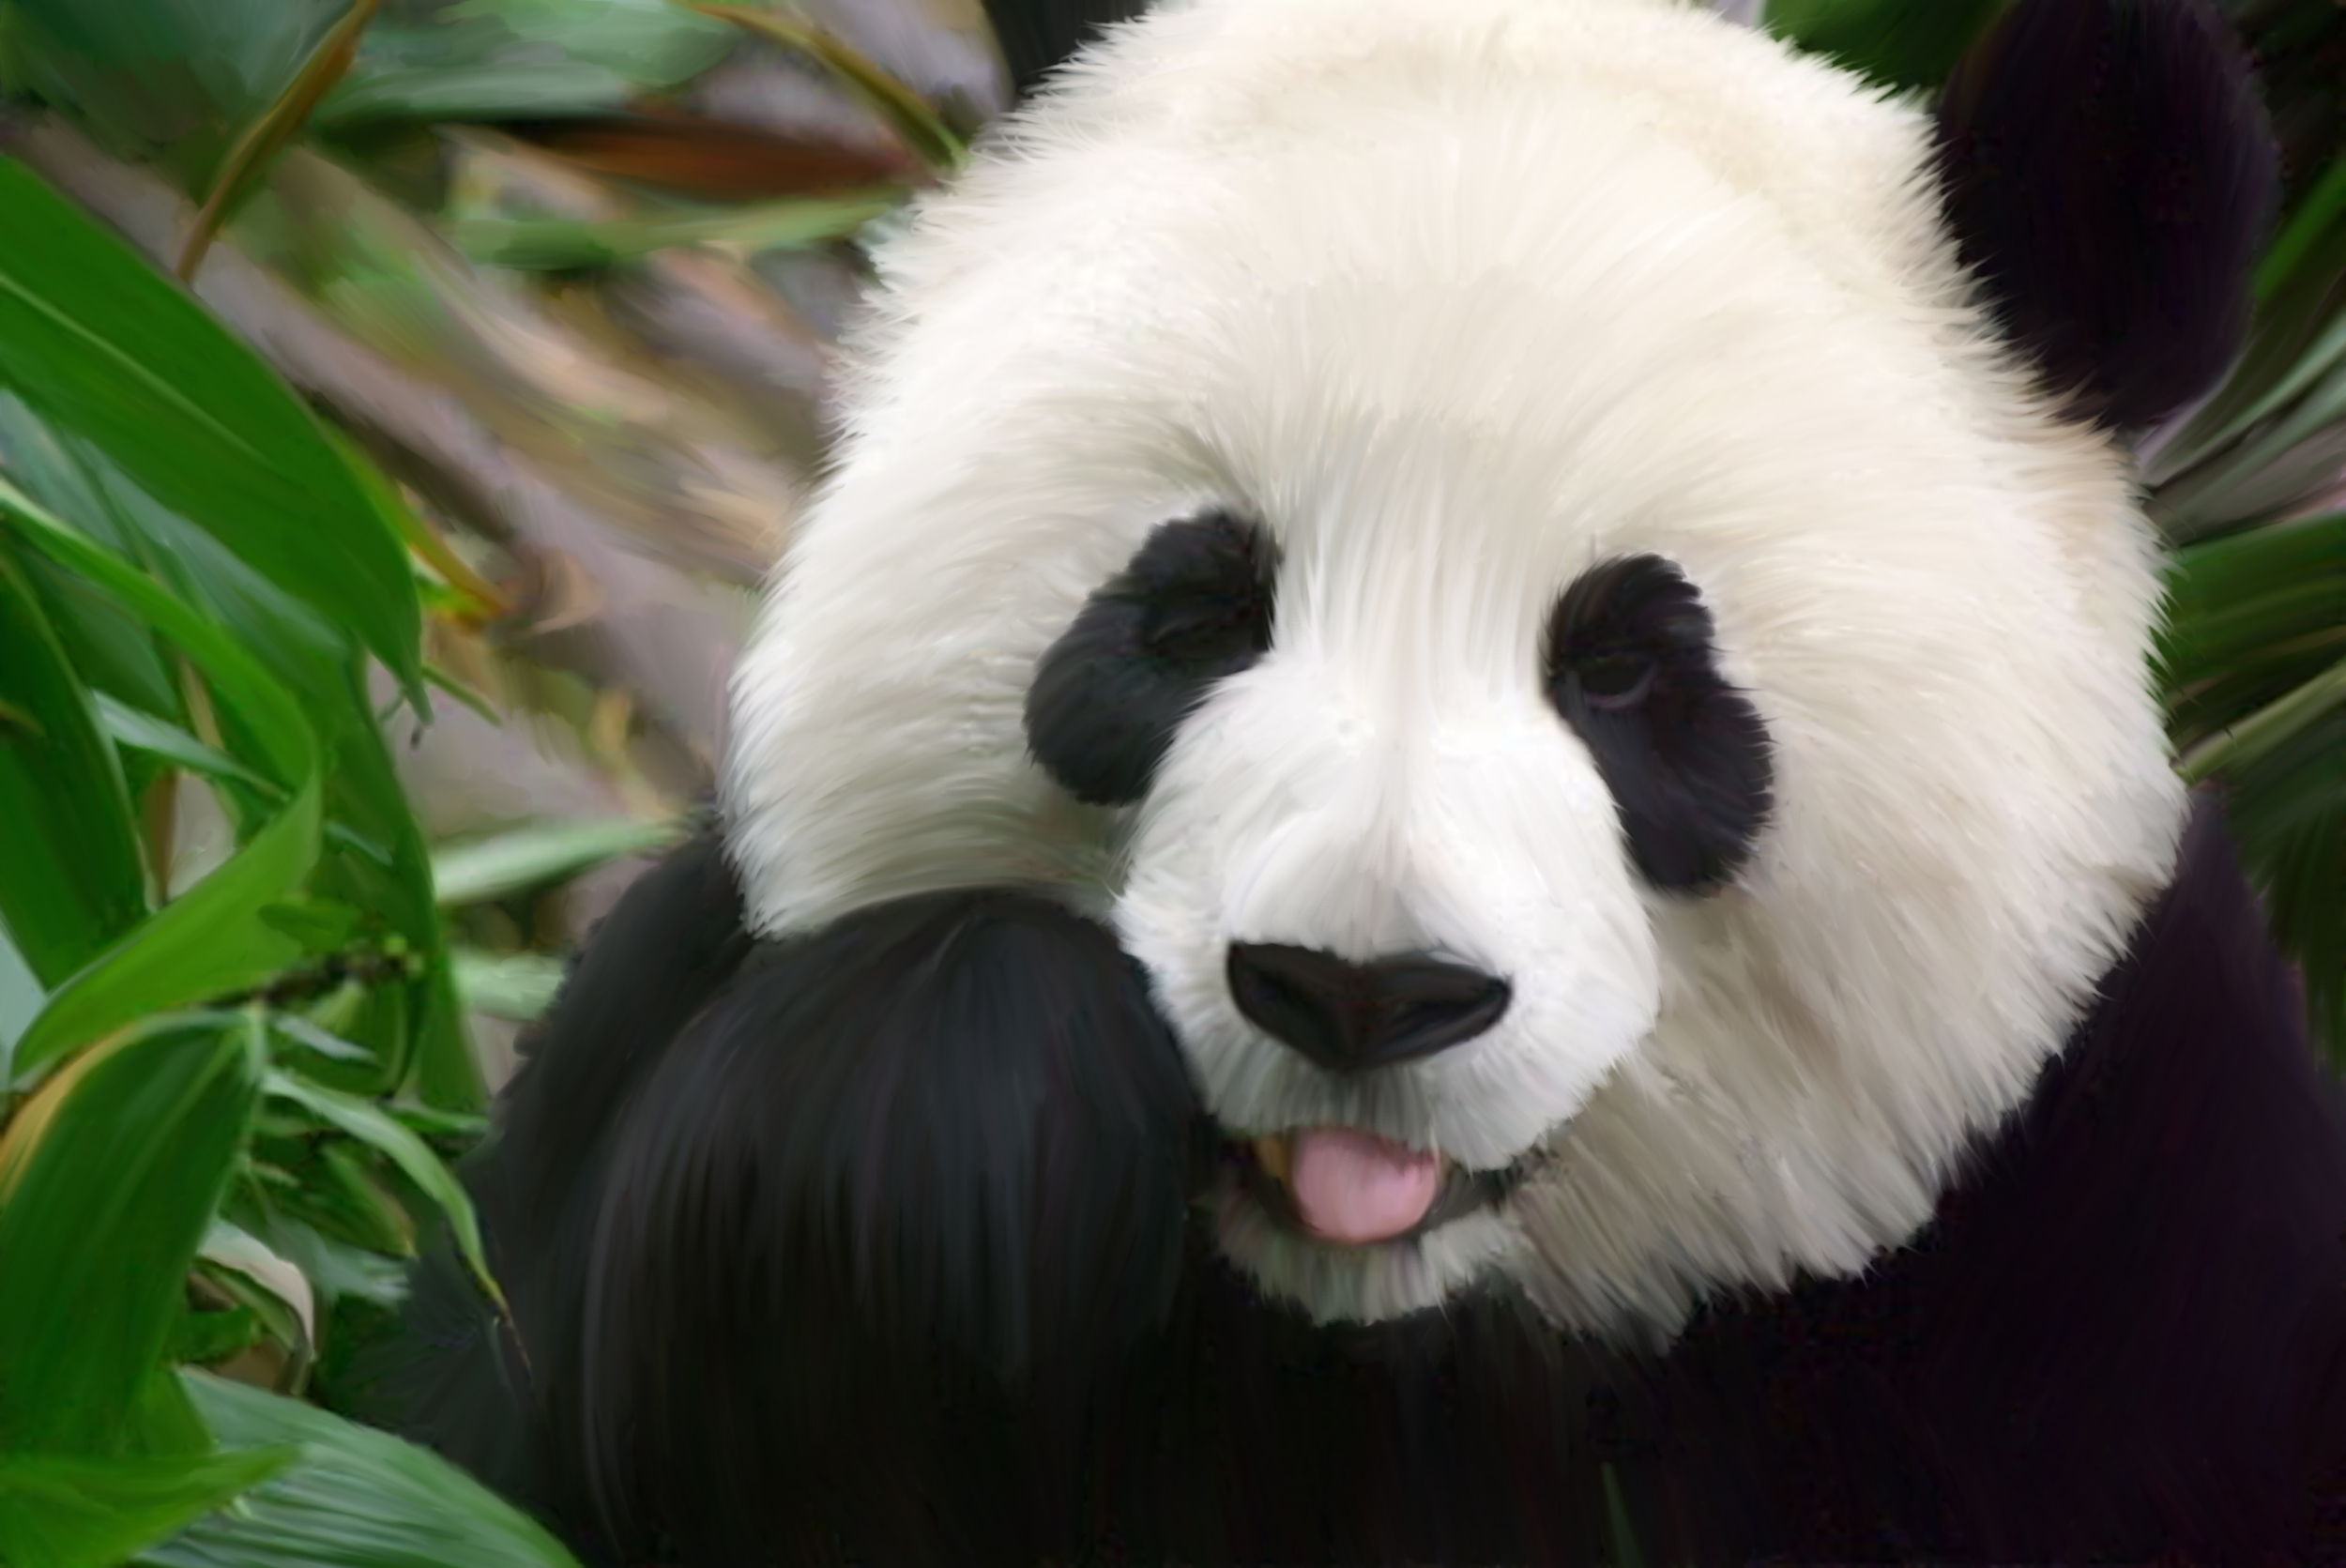 Cute Panda HD Wallpaper Animals Wallpapers 2500x1671